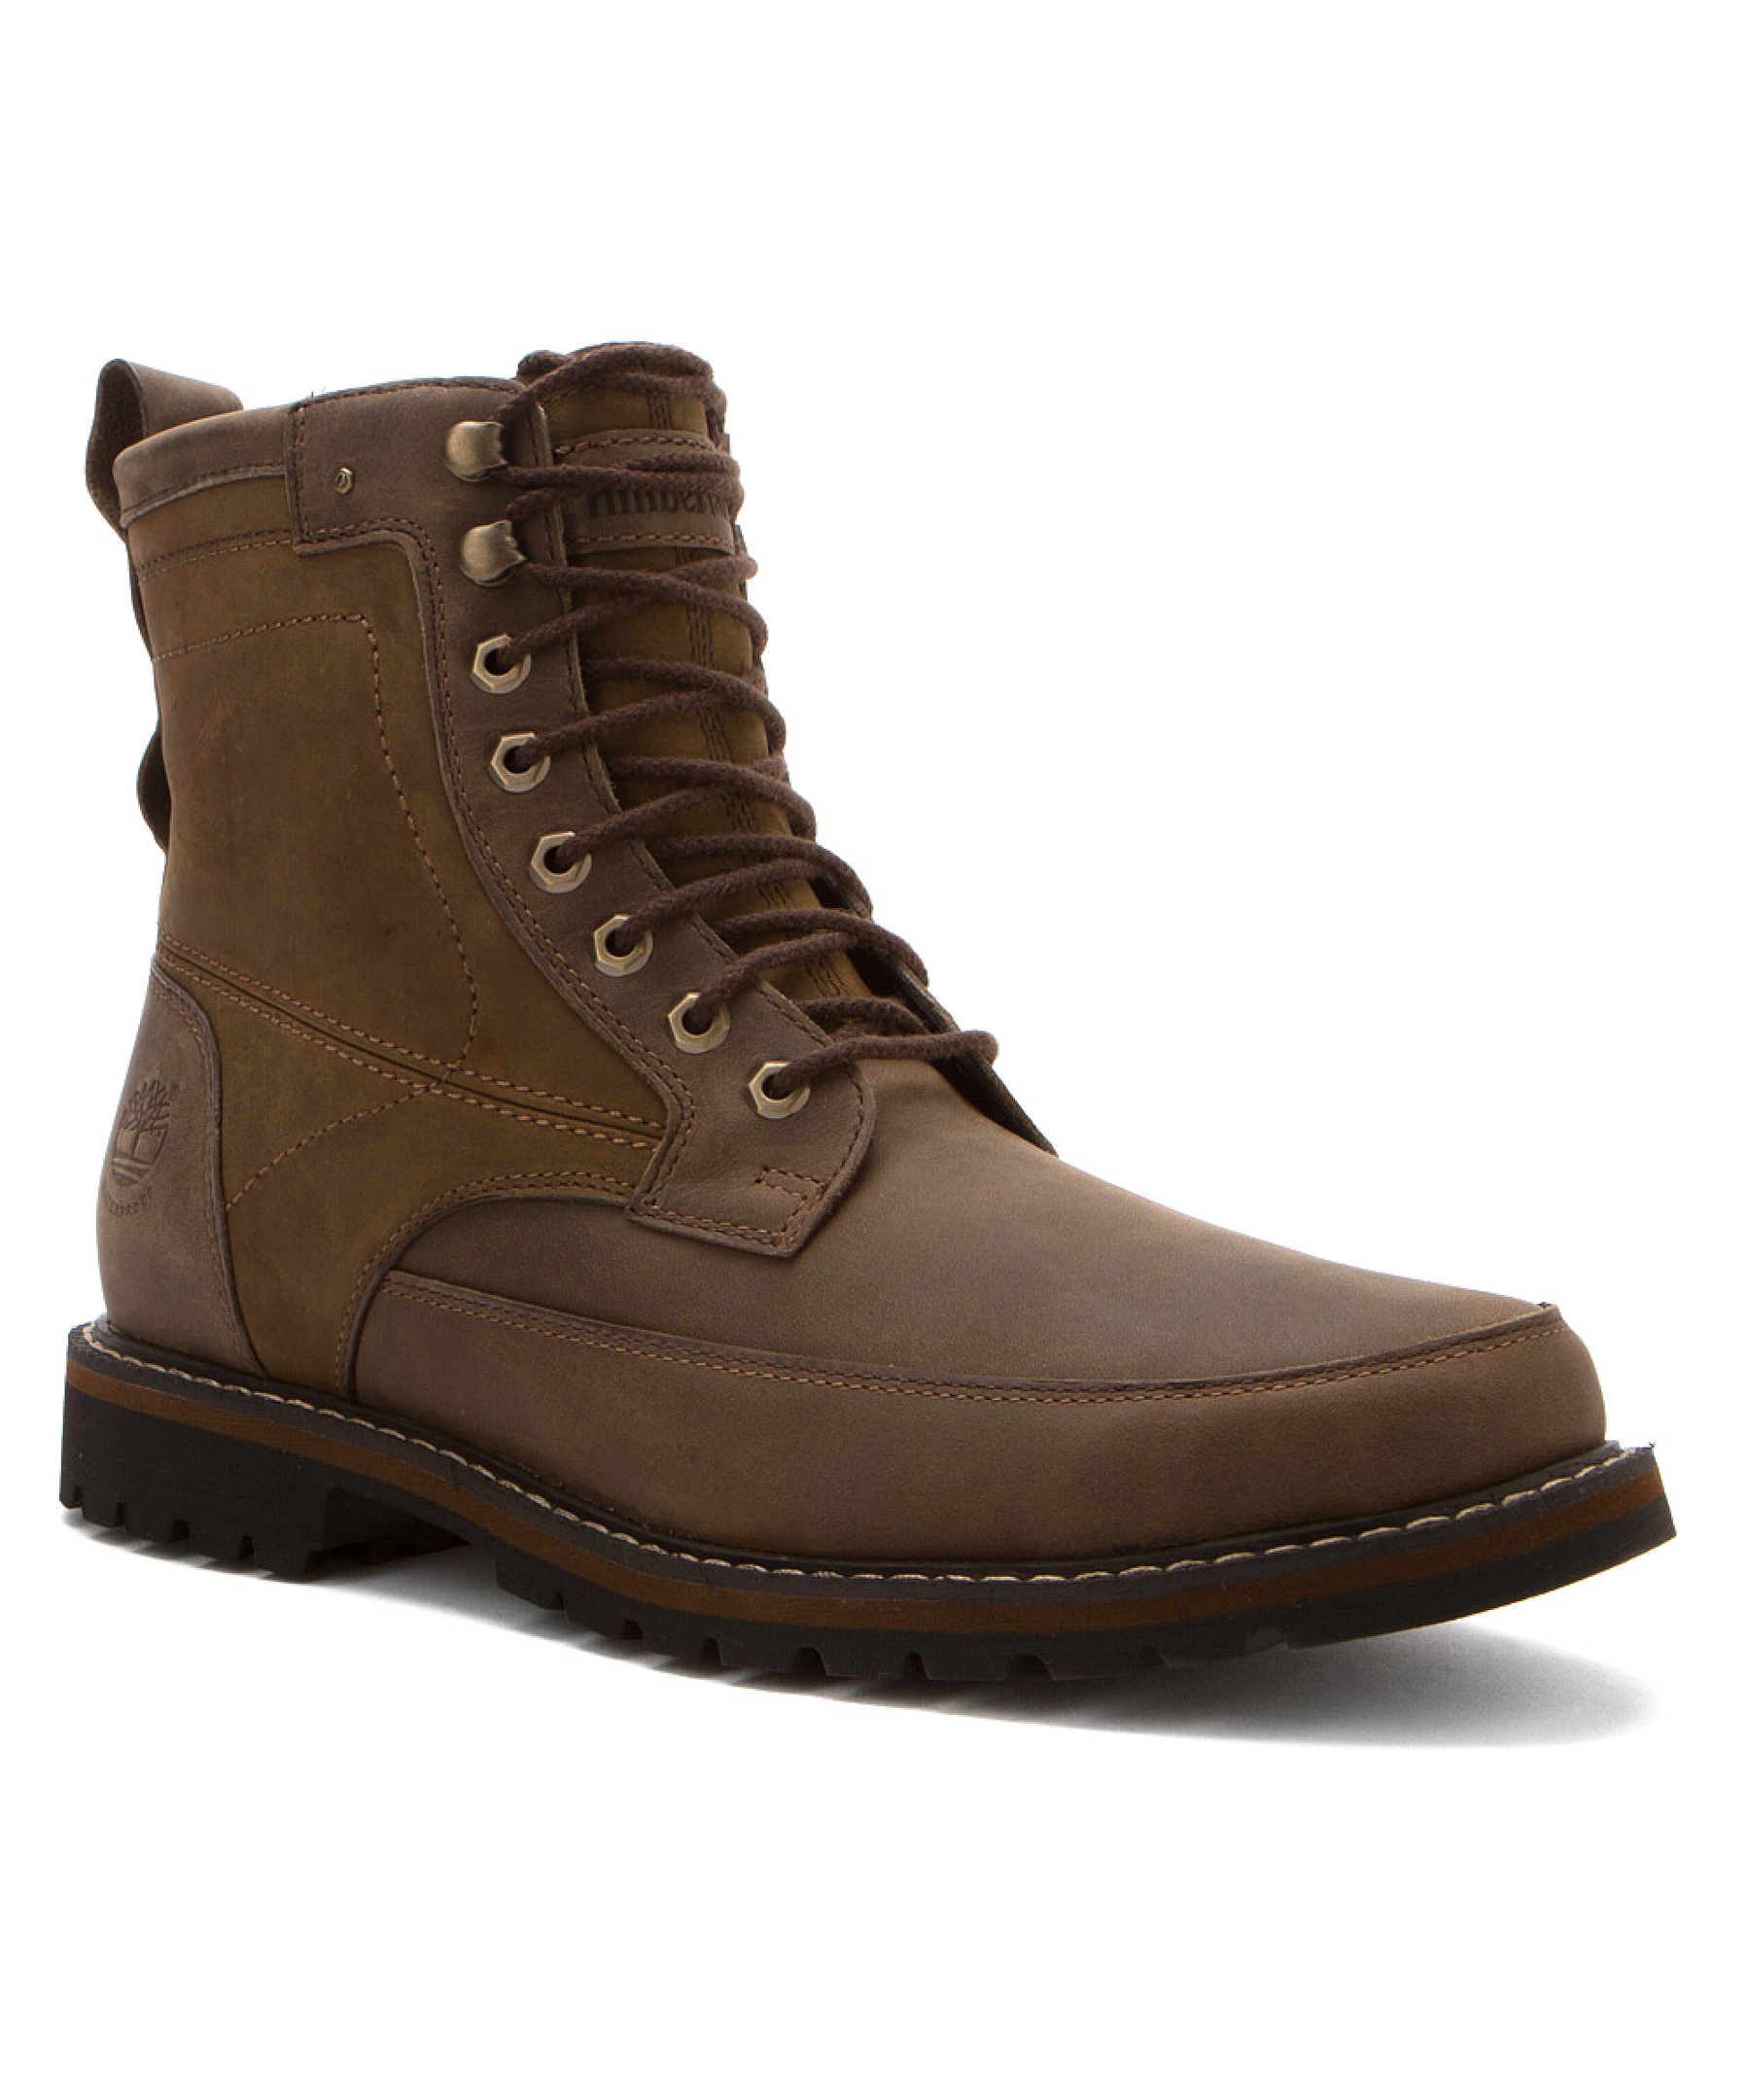 timberland men 39 s earthkeepers chestnut ridge 6 inch boot waterproof boots in brown for men. Black Bedroom Furniture Sets. Home Design Ideas